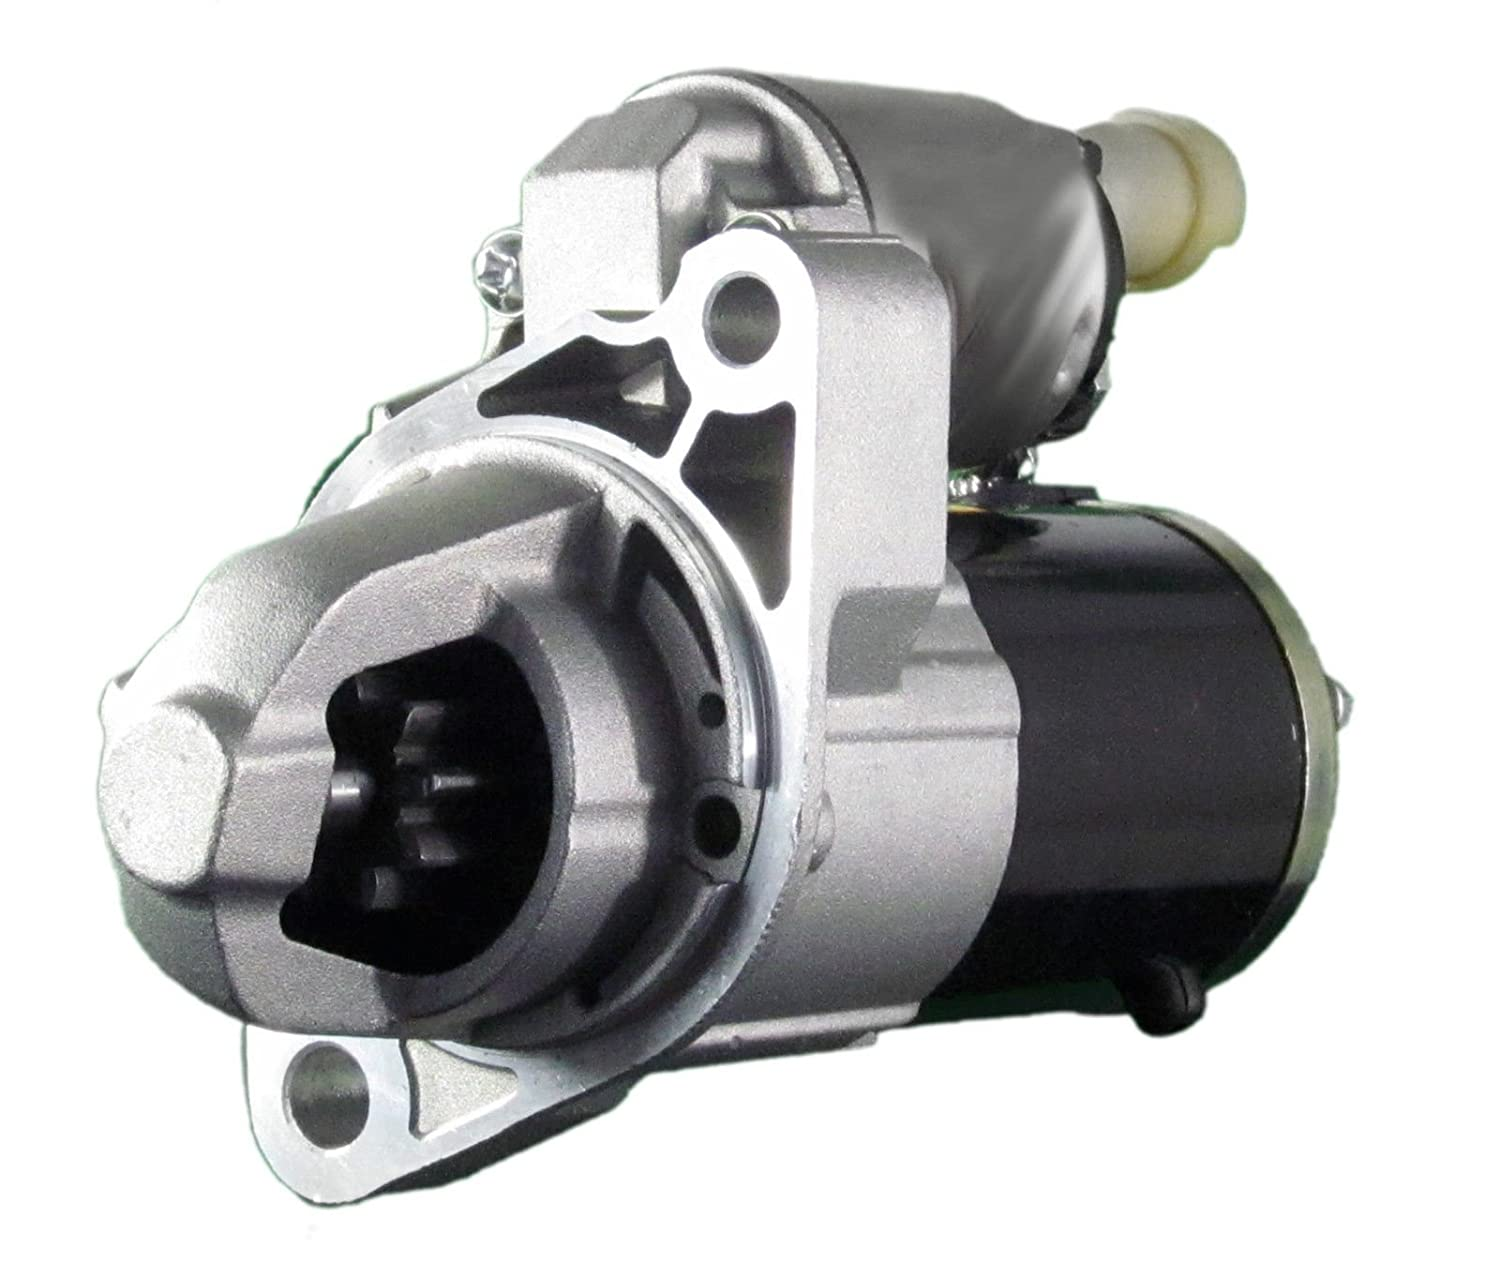 FACTORY REMAN STARTER 2.4 2.4L ACURA TSX with Automatic Trans 04 05 2004 2005